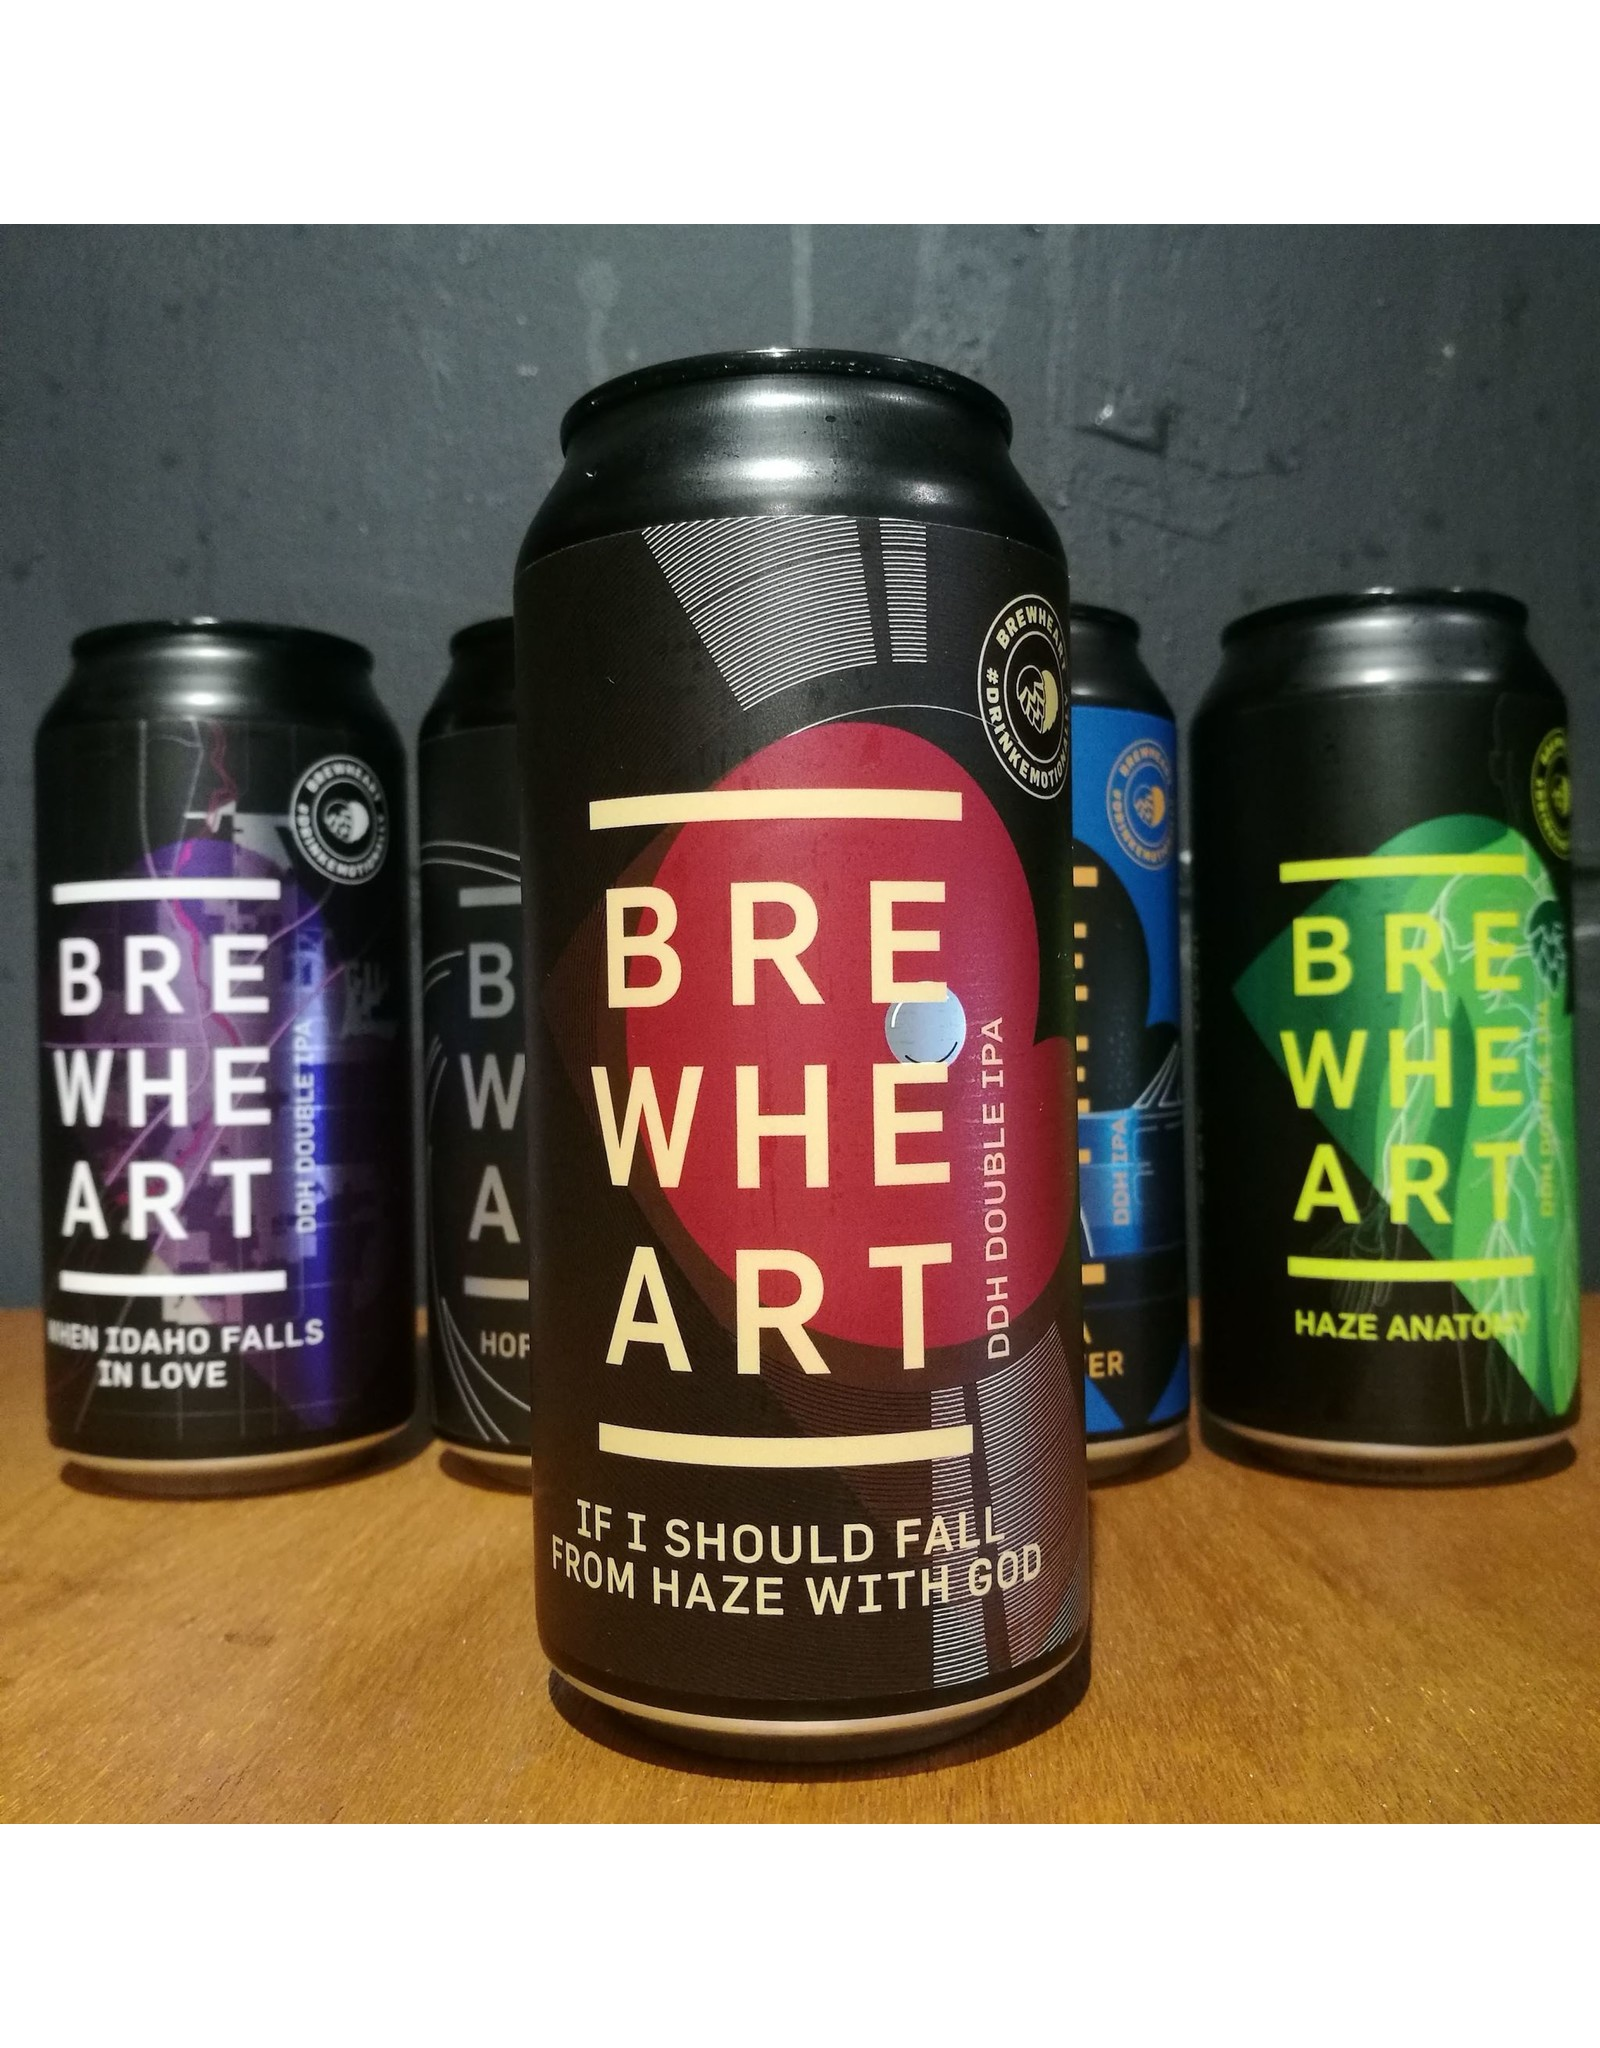 Brewheart Brewheart - If I Should Fall From Haze With God